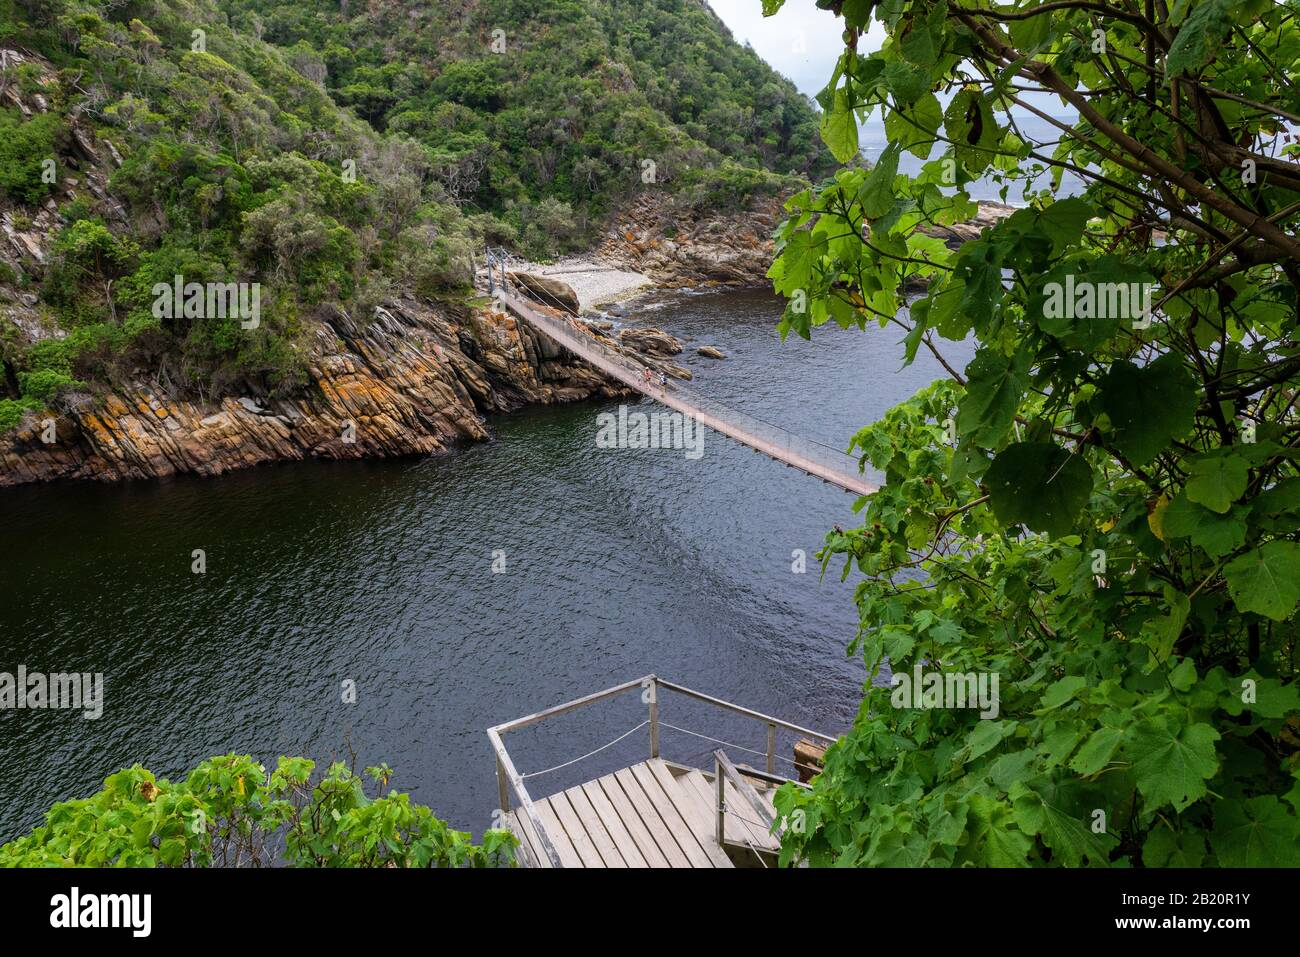 High aspect view from foothpath of suspension bridge at Storms River Mouth,Tsitsikamma National Park, Garden Route, near Port Elizabeth,South Africa Stock Photo